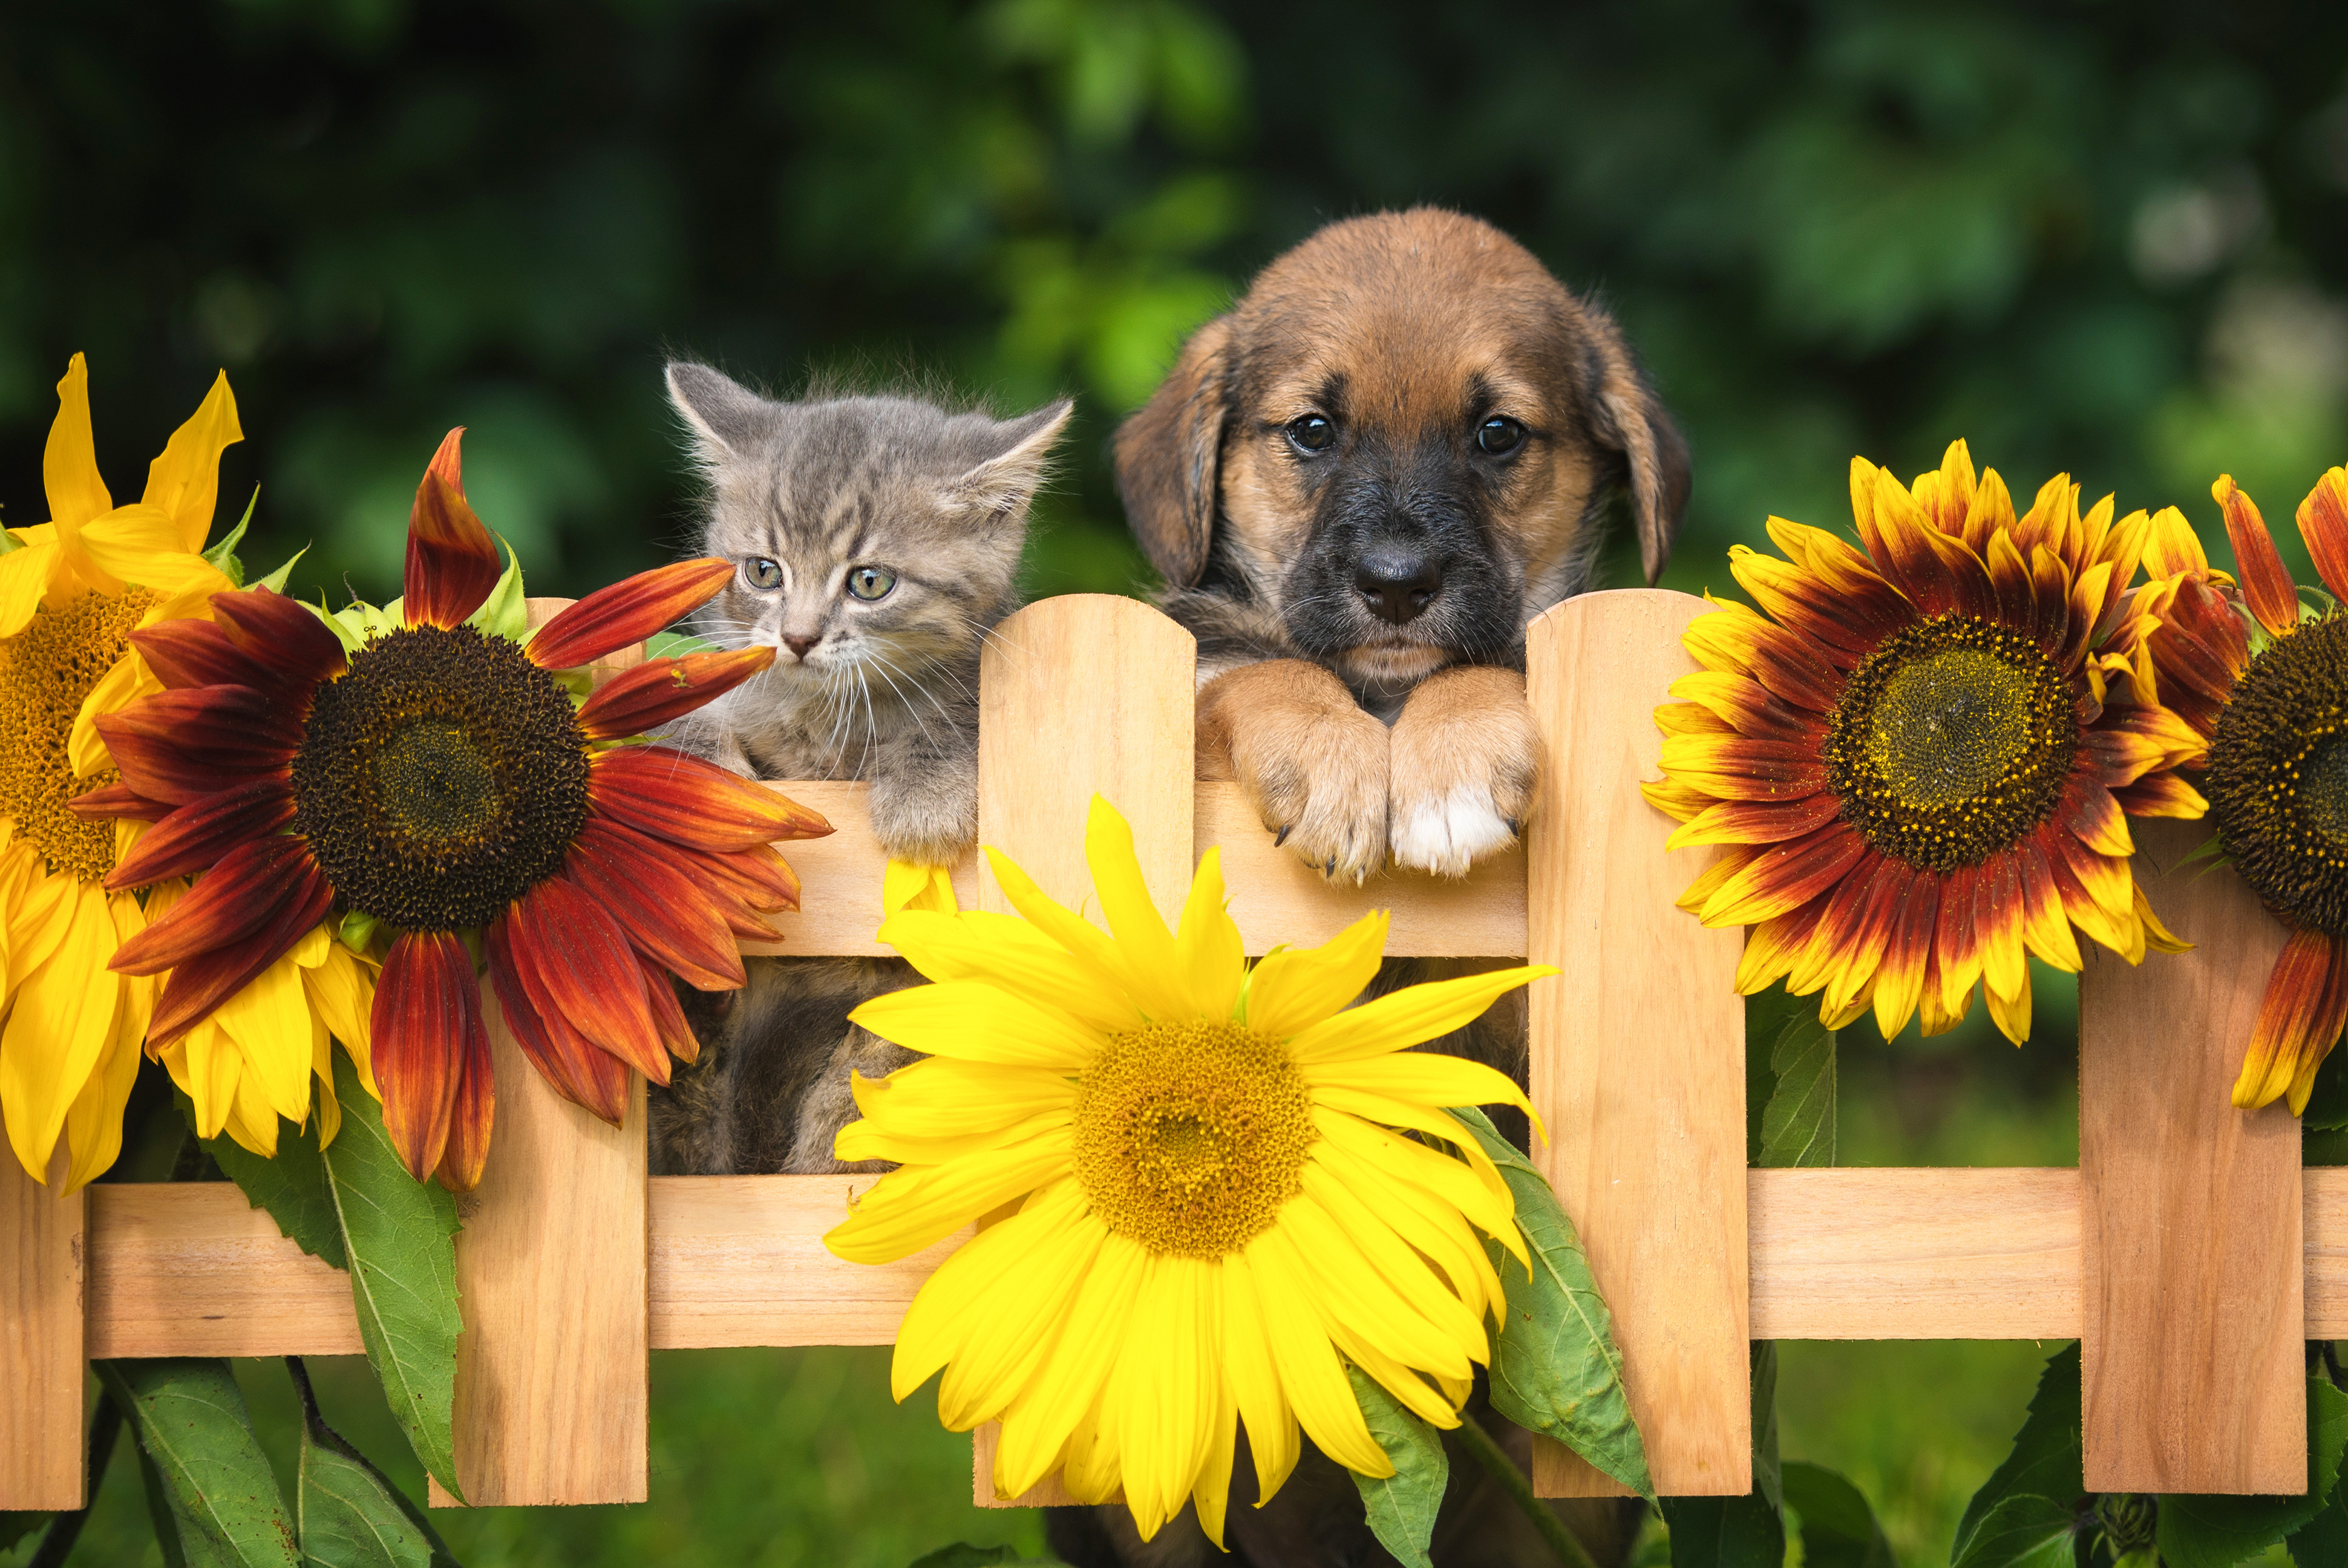 A puppy and kitten surrounded by sunflowers.